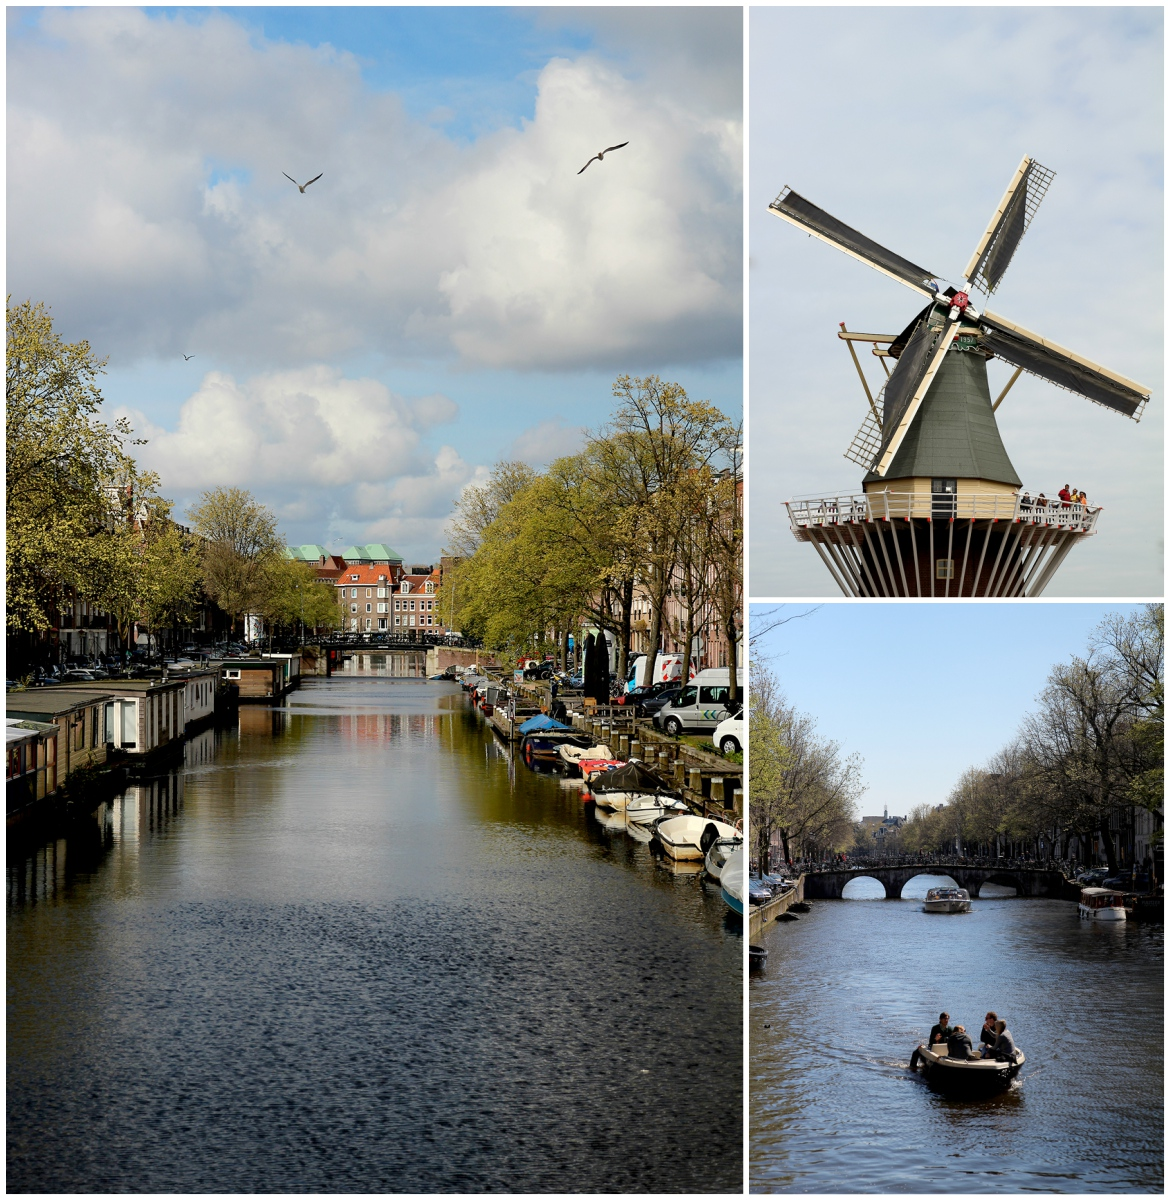 Admiring the sights and canals of Amsterdam